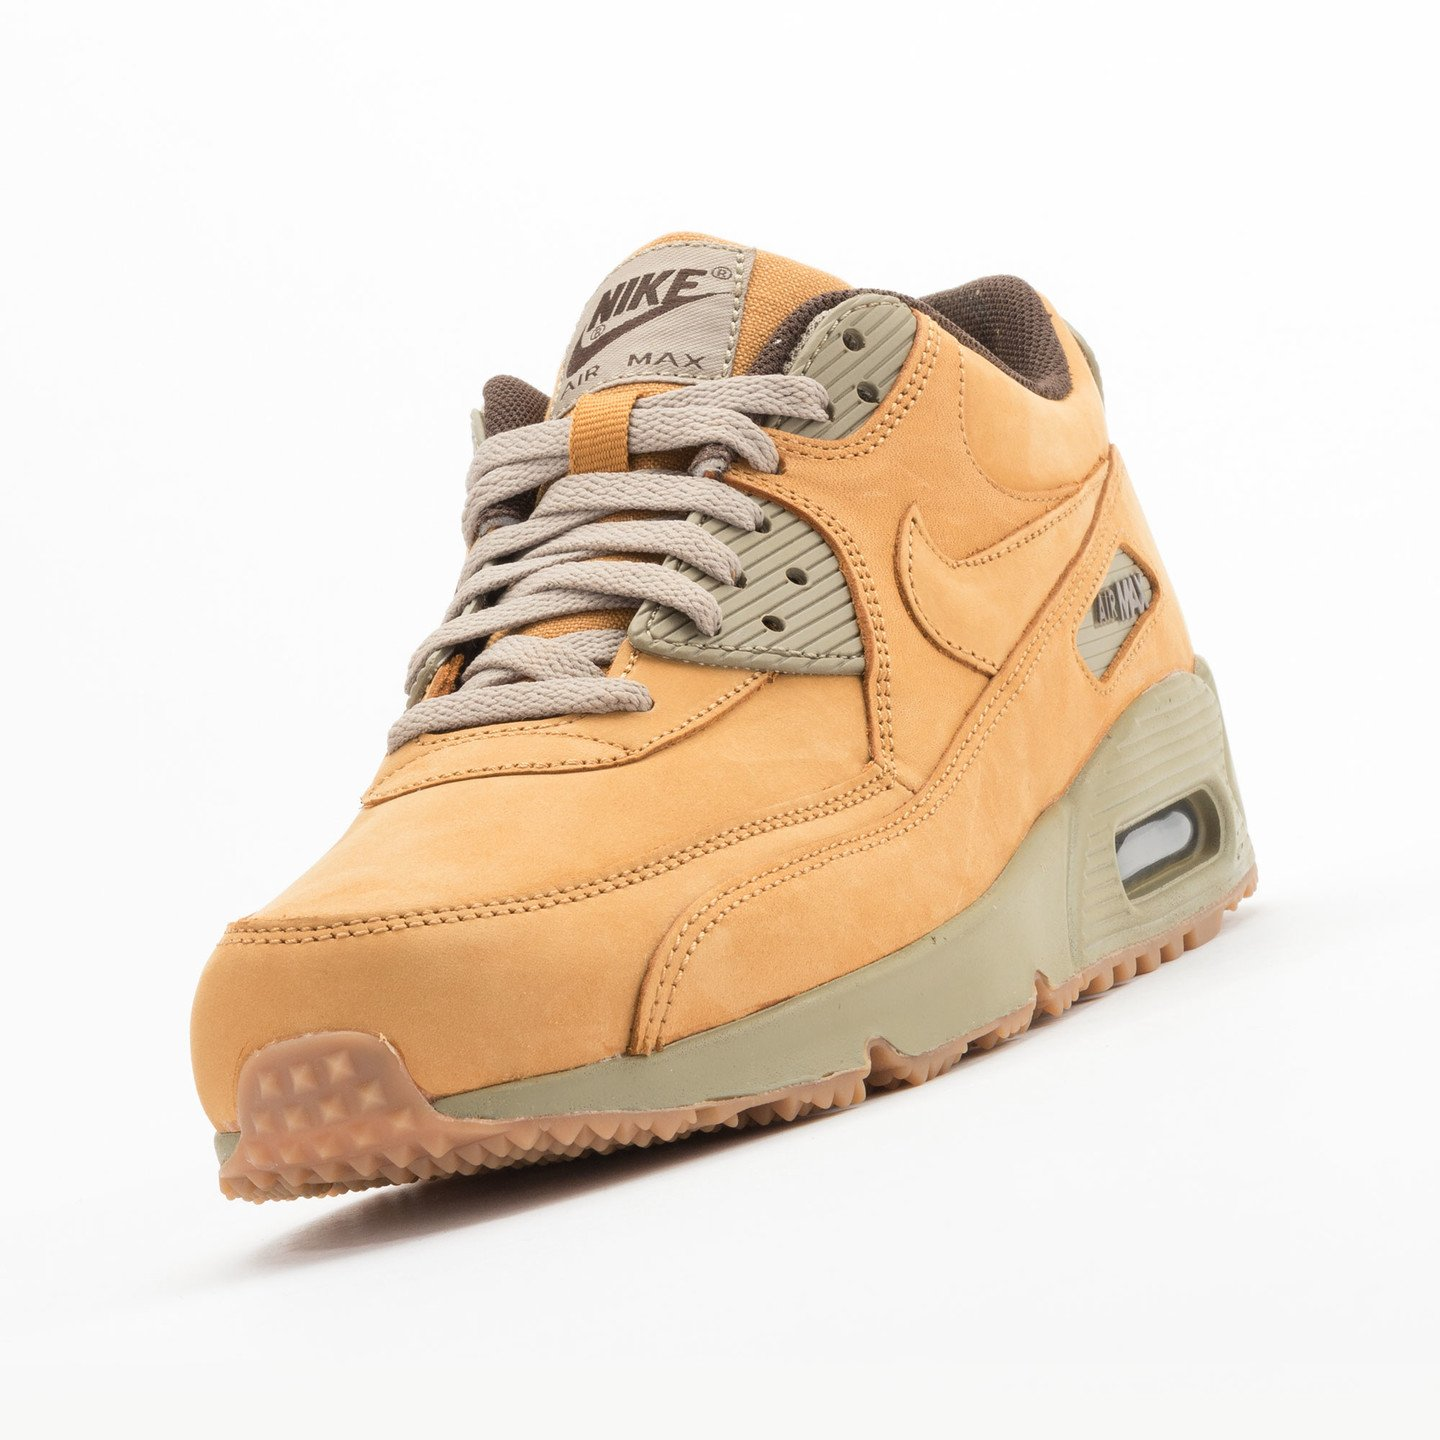 Nike Air Max 90 Winter Premium Bronze / Baroque Brown 683282-700-44.5